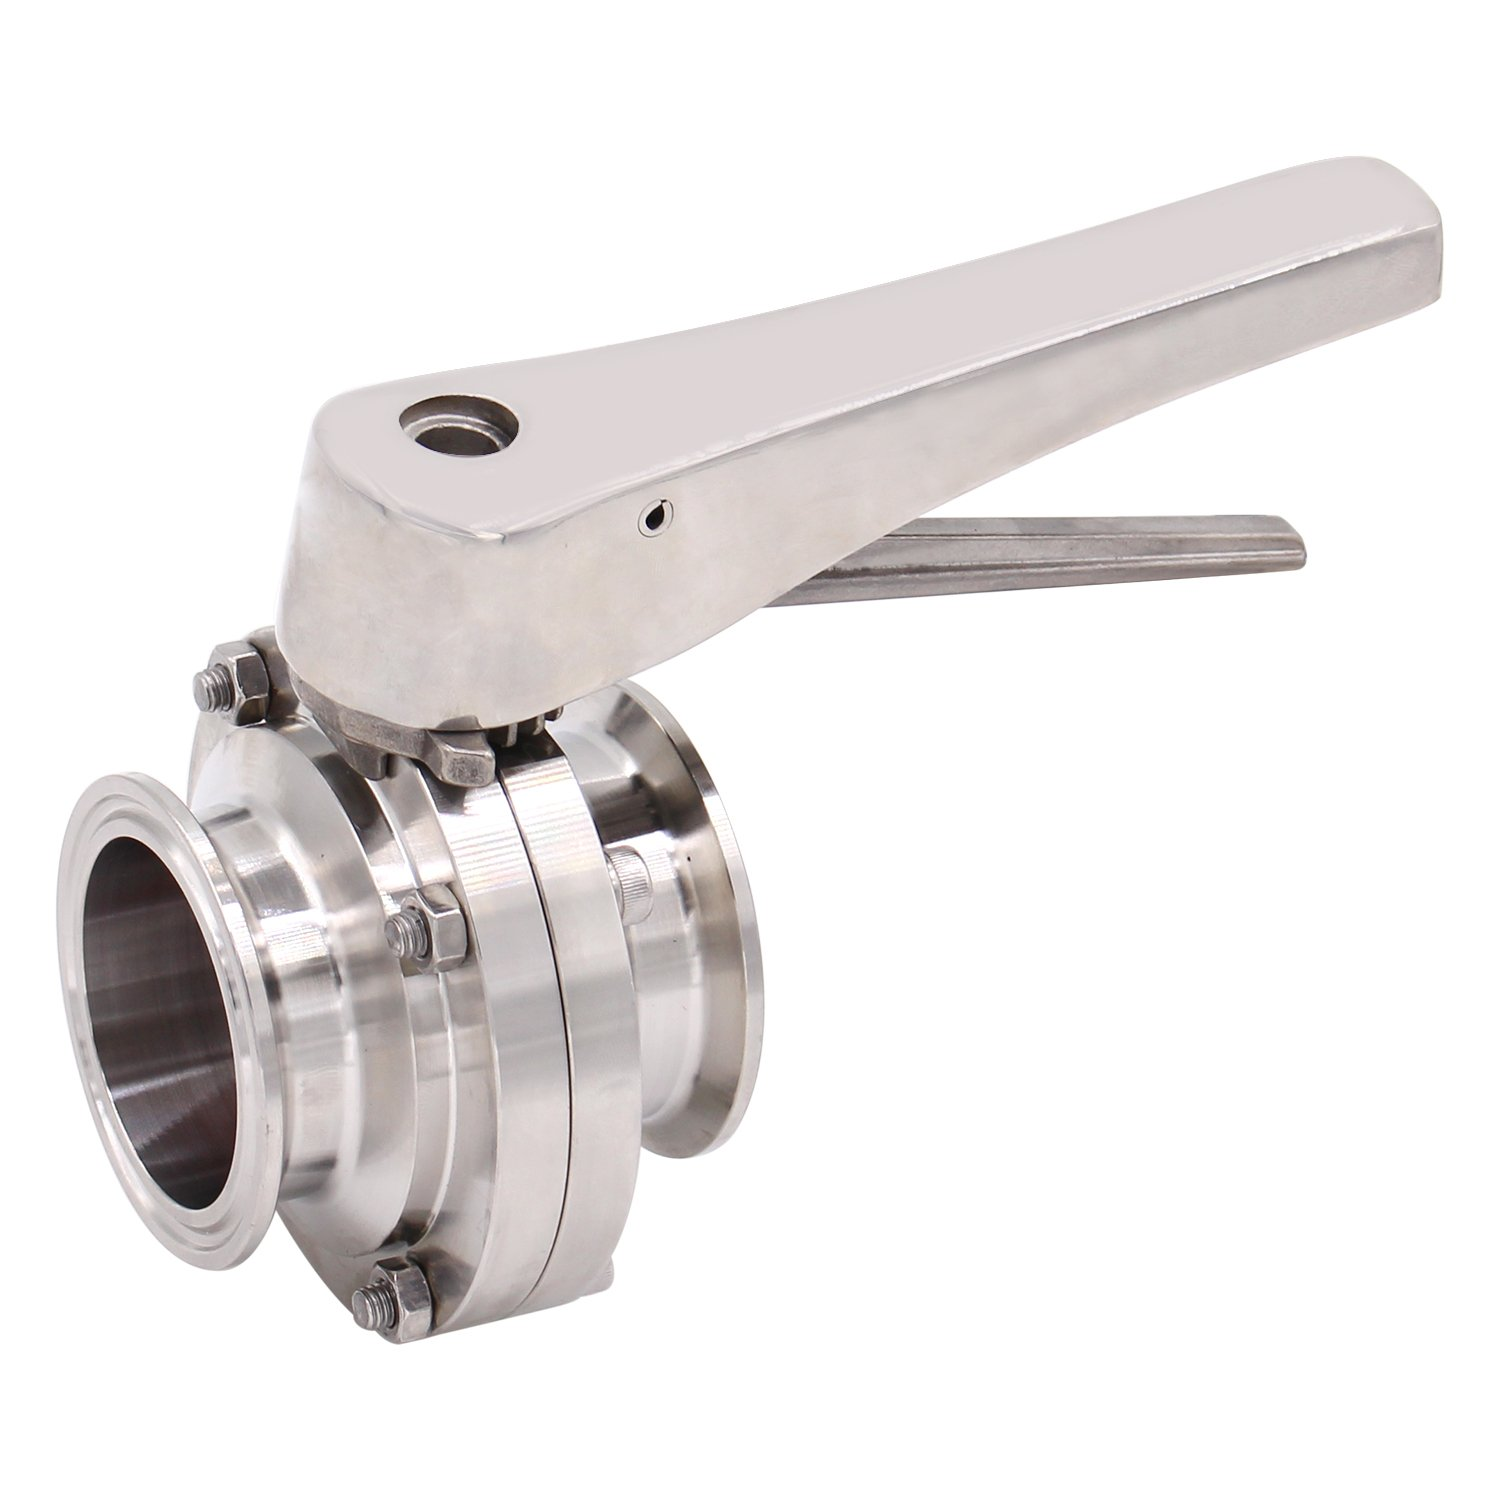 Dernord Butterfly Valve with Trigger Handle Stainless Steel 304 Tri Clamp Clover (2 Inch Tri Clamp Butterfly Valve) by Dernord (Image #3)